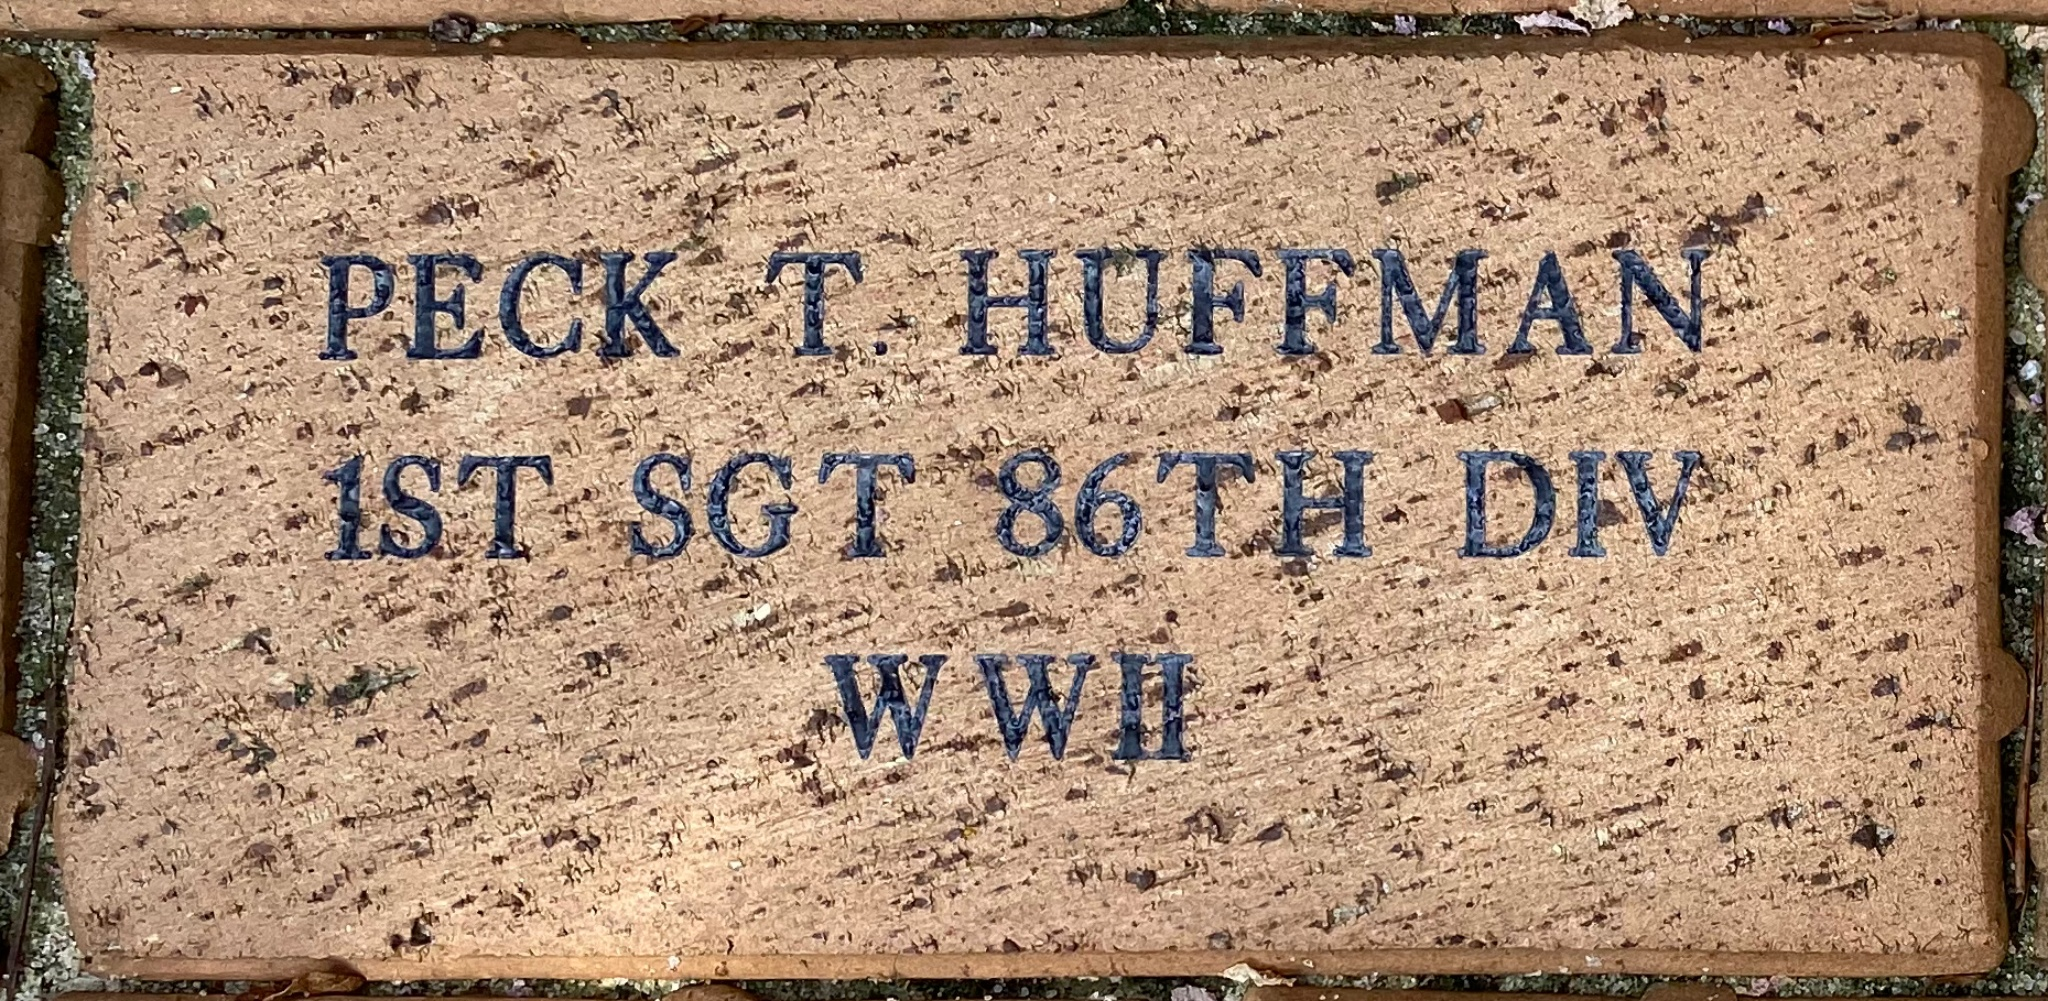 PECK T. HUFFMAN 1ST SGT 86TH DIV WWII